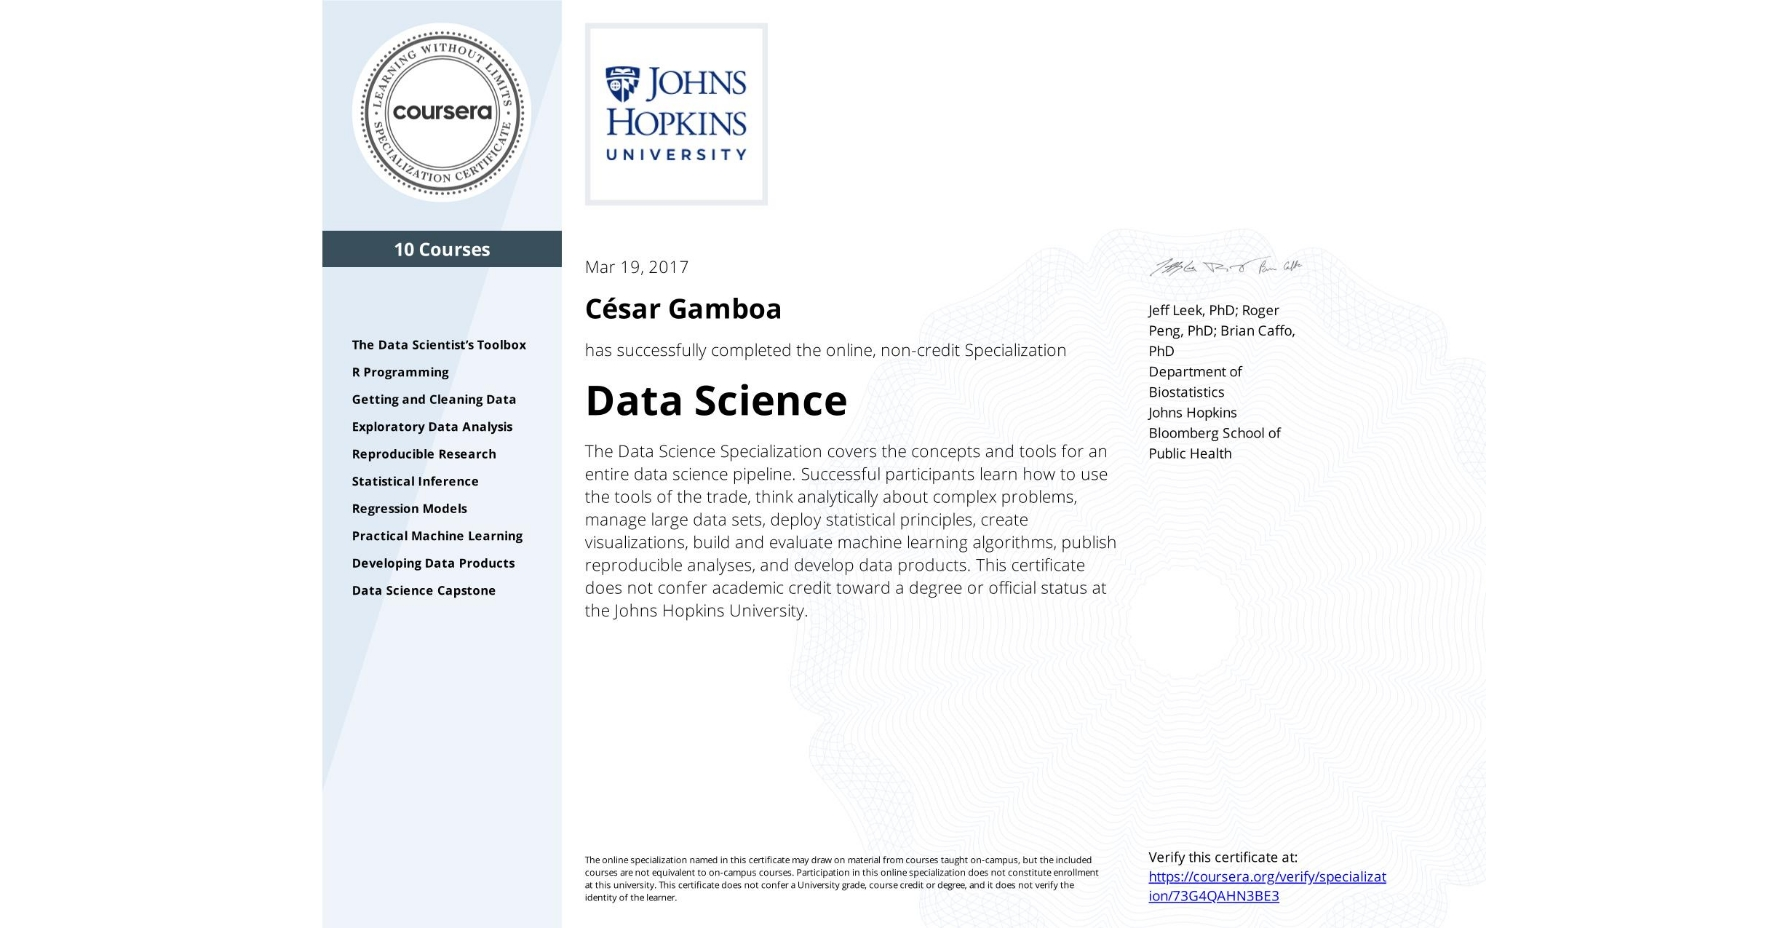 View certificate for César Gamboa, Data Science, offered through Coursera. The Data Science Specialization covers the concepts and tools for an entire data science pipeline. Successful participants learn how to use the tools of the trade, think analytically about complex problems, manage large data sets, deploy statistical principles, create visualizations, build and evaluate machine learning algorithms, publish reproducible analyses, and develop data products.    This certificate does not confer academic credit toward a degree or official status at the Johns Hopkins University.